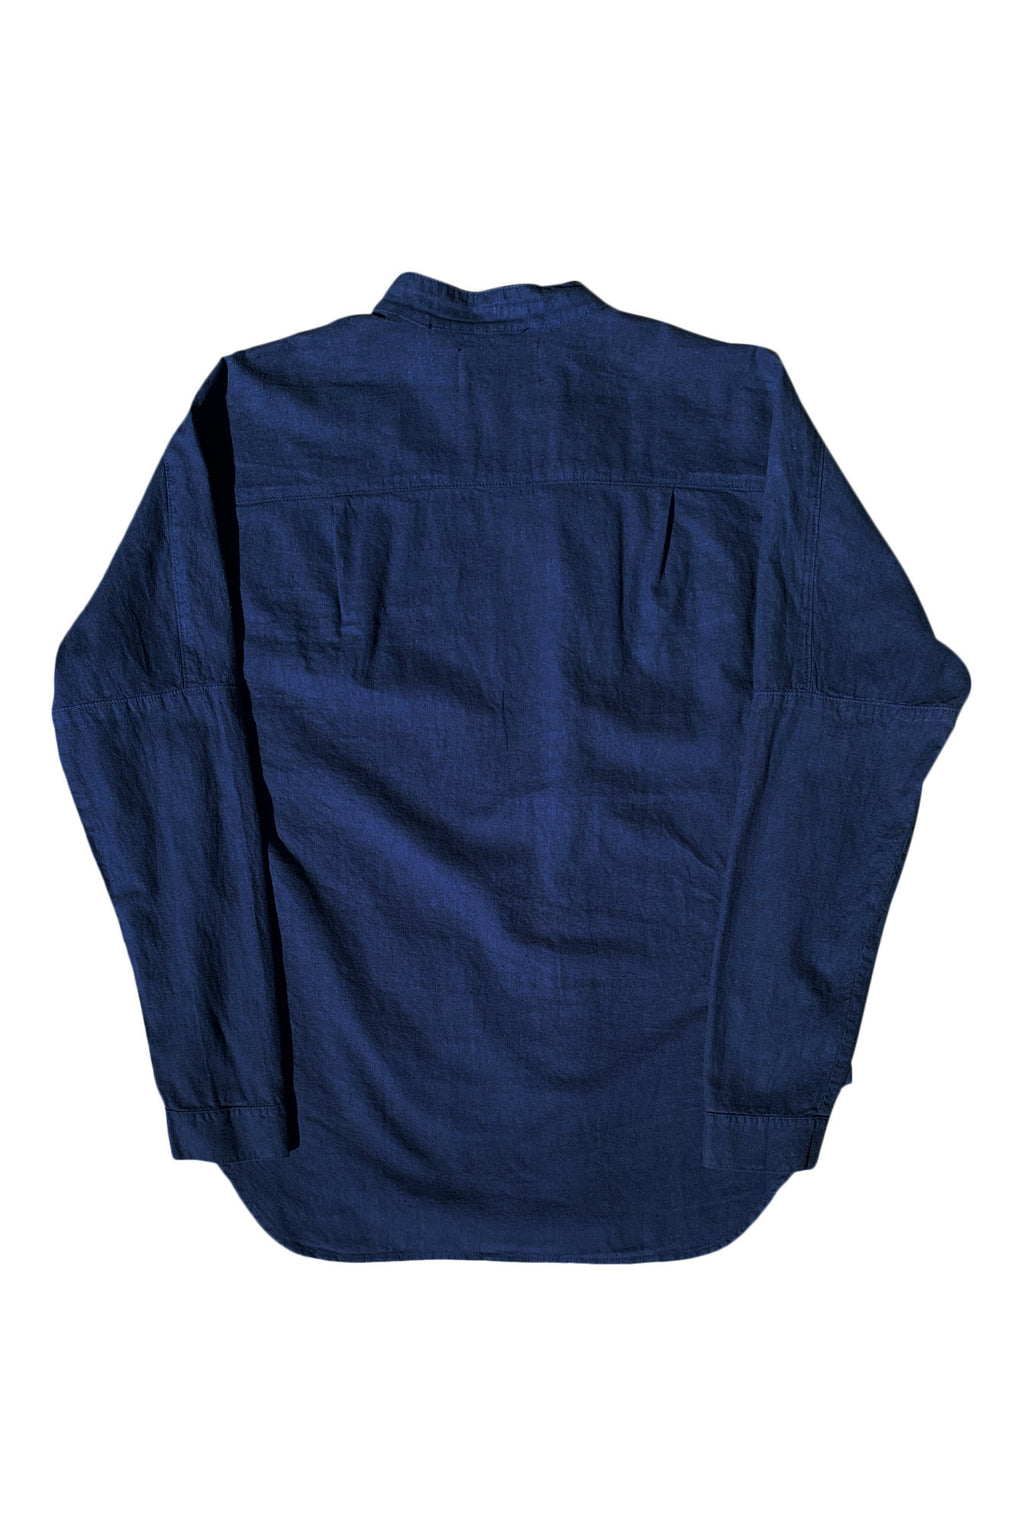 A Sym Button Up in Indigo